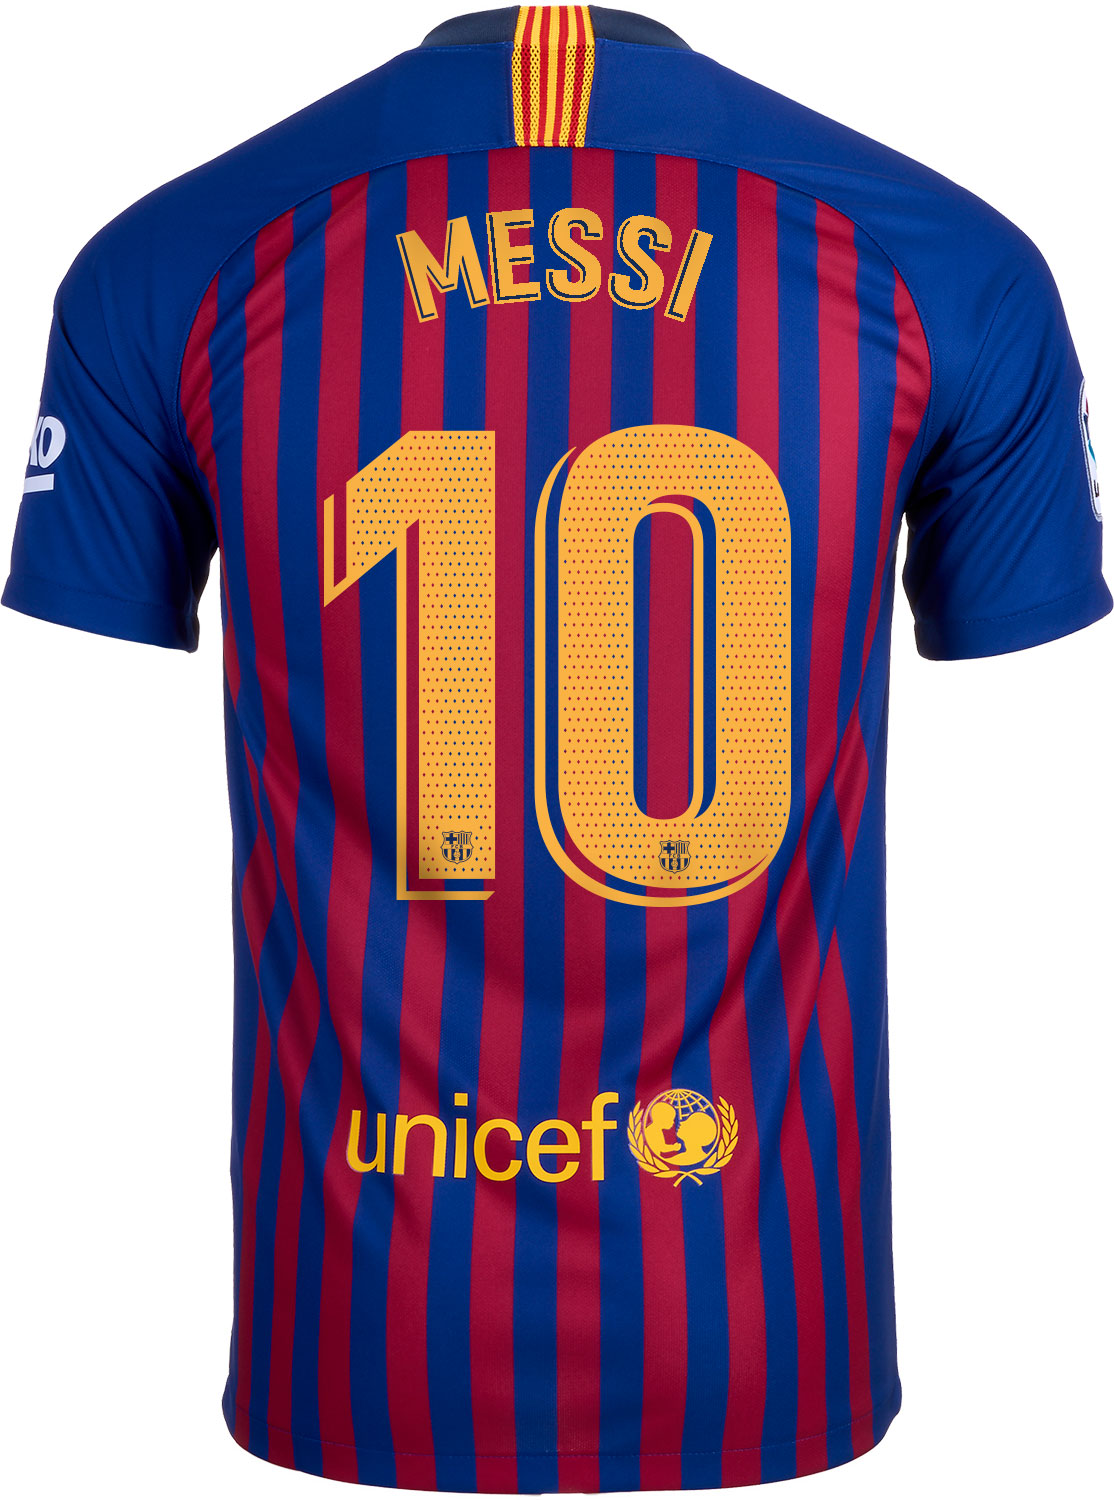 25ec61e64 Nike Lionel Messi Barcelona Home Jersey - Youth 2018-19 - SoccerPro